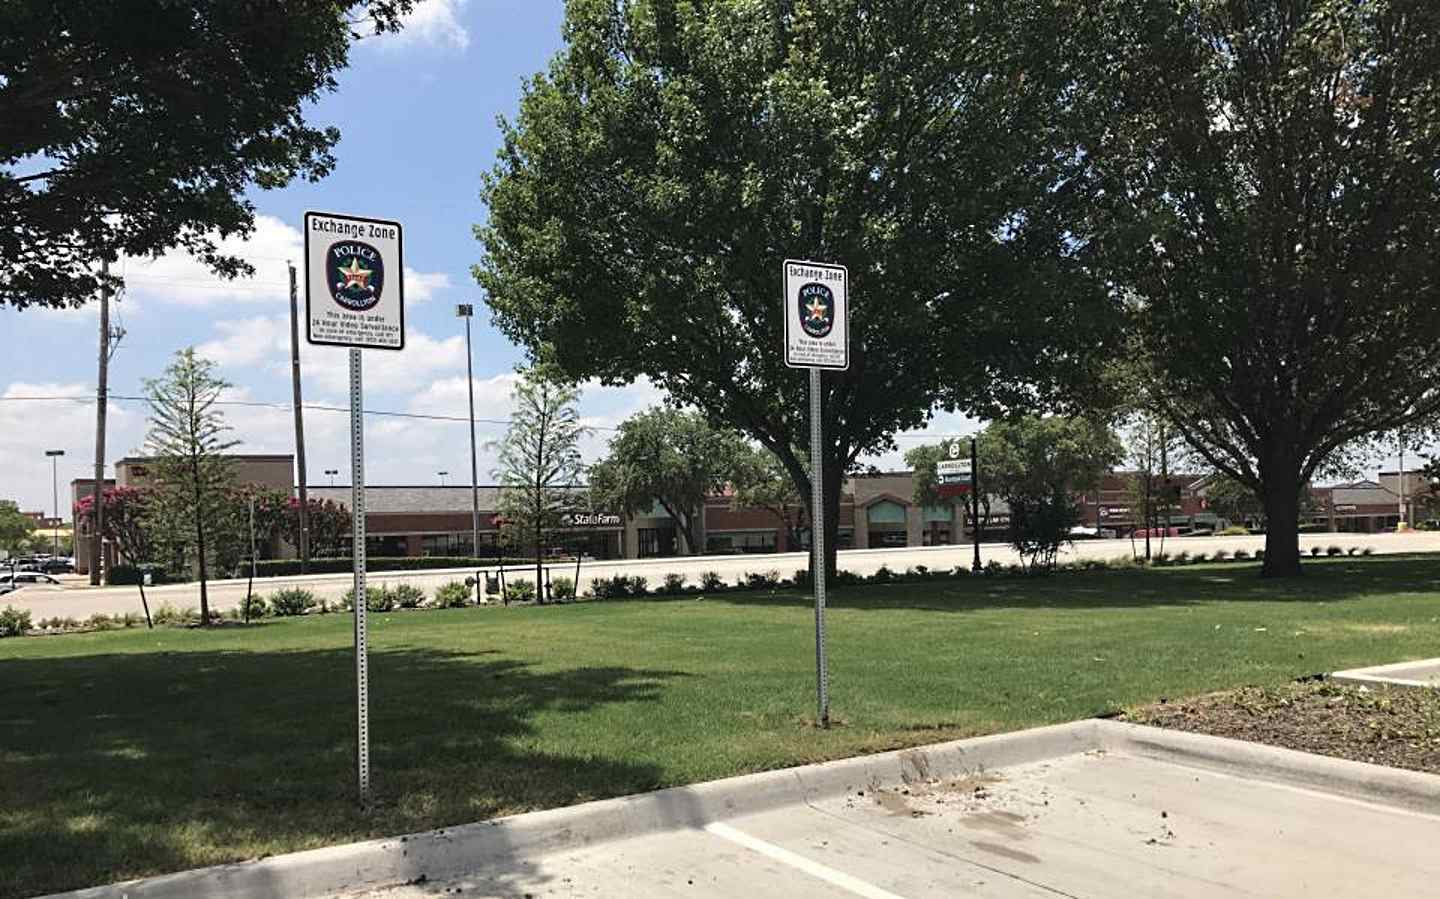 A picture of two safe exchange parking spots at a police station.